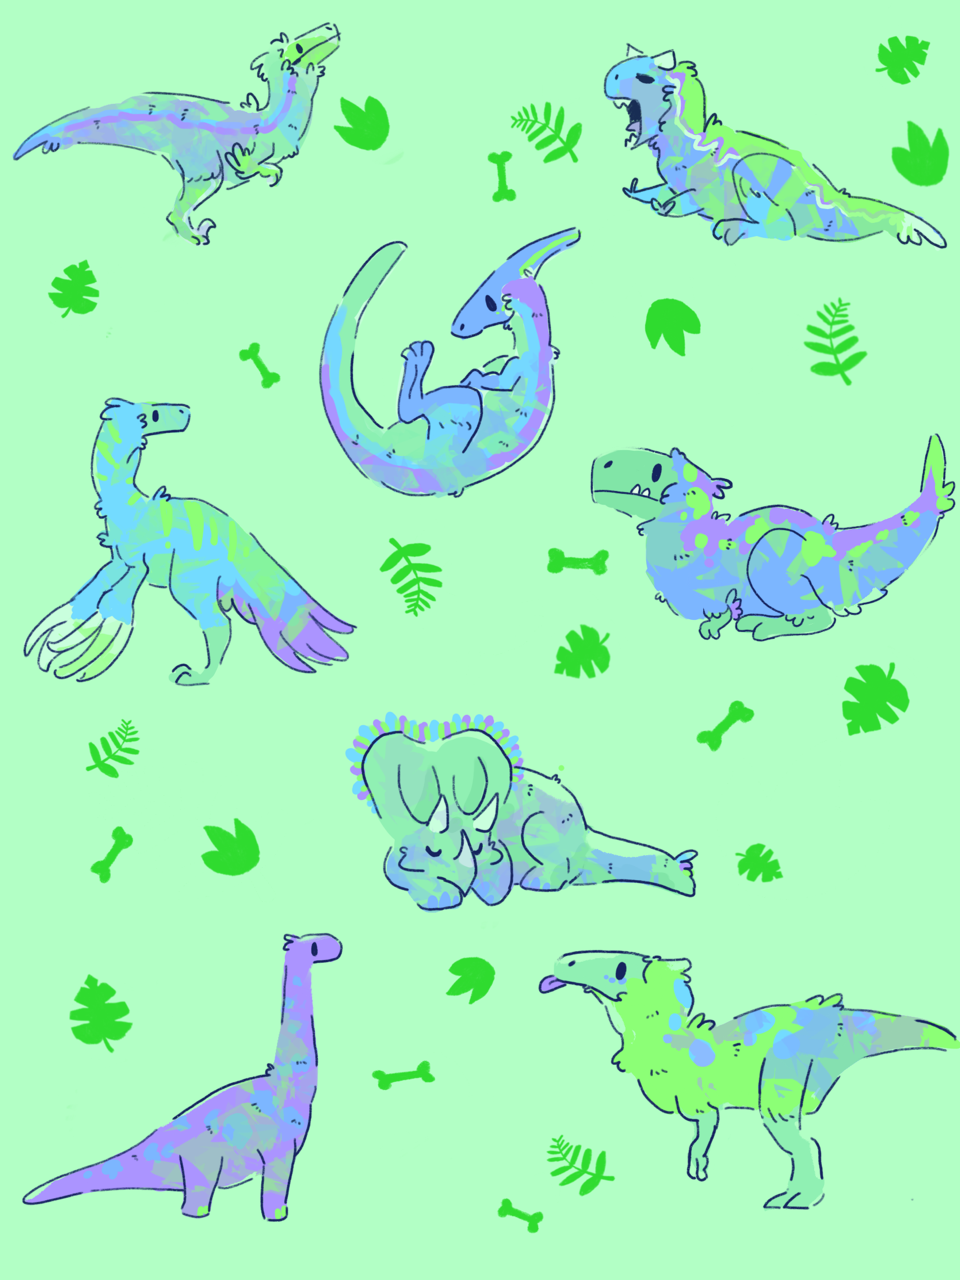 Doodlize A Feathered Dinosaur Wallpaper I Finished Free To Dinosaur Wallpaper Cute Dinosaur Dinosaur Background